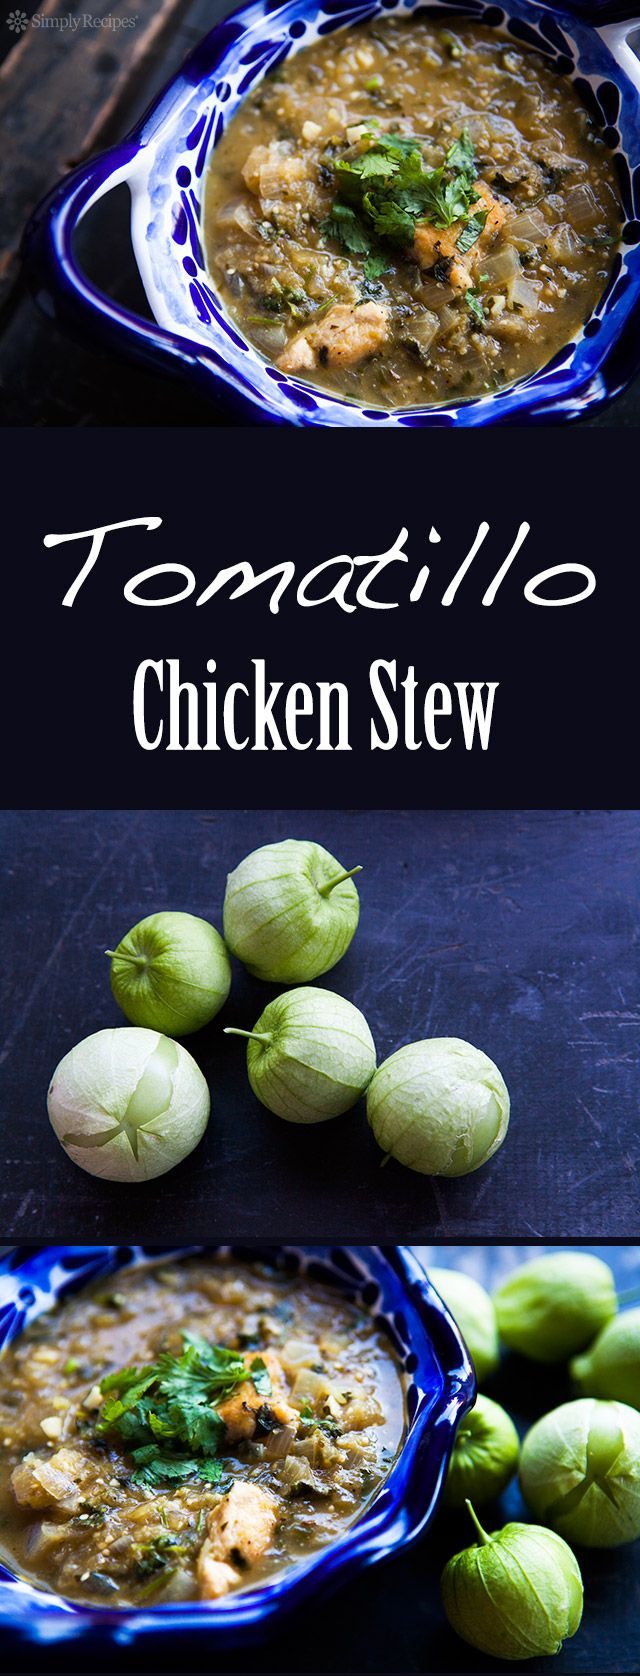 Tomatillo Chicken Stew ~ Spicy chicken stew with tomatillos, jalapenos, onions, garlic, cumin, oregano, and cilantro. ~ SimplyRecipes.com